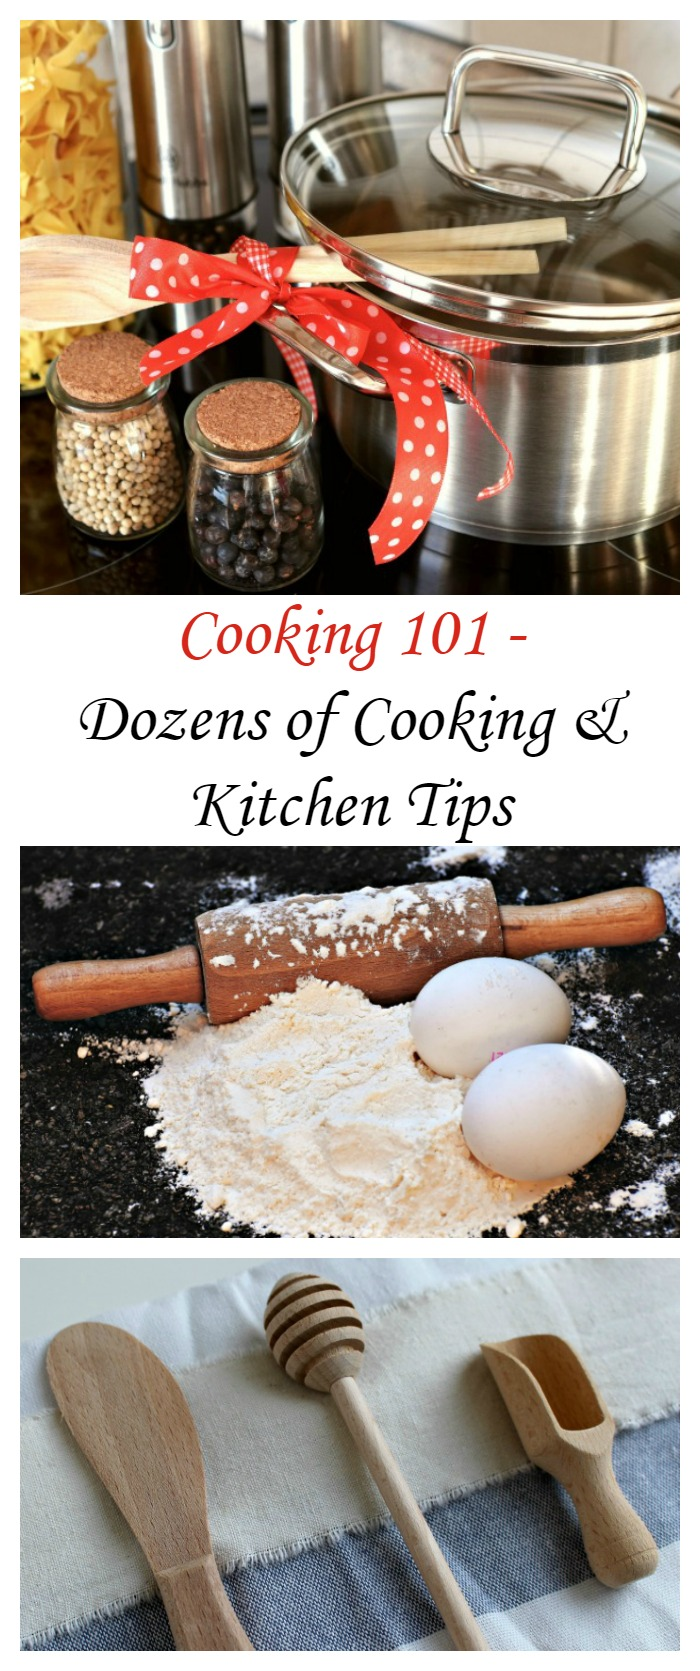 Do you have a general cooking question? Be sure to see my cooking 101 page. I have answers to dozens of cooking questions and add more cooking tips every week.